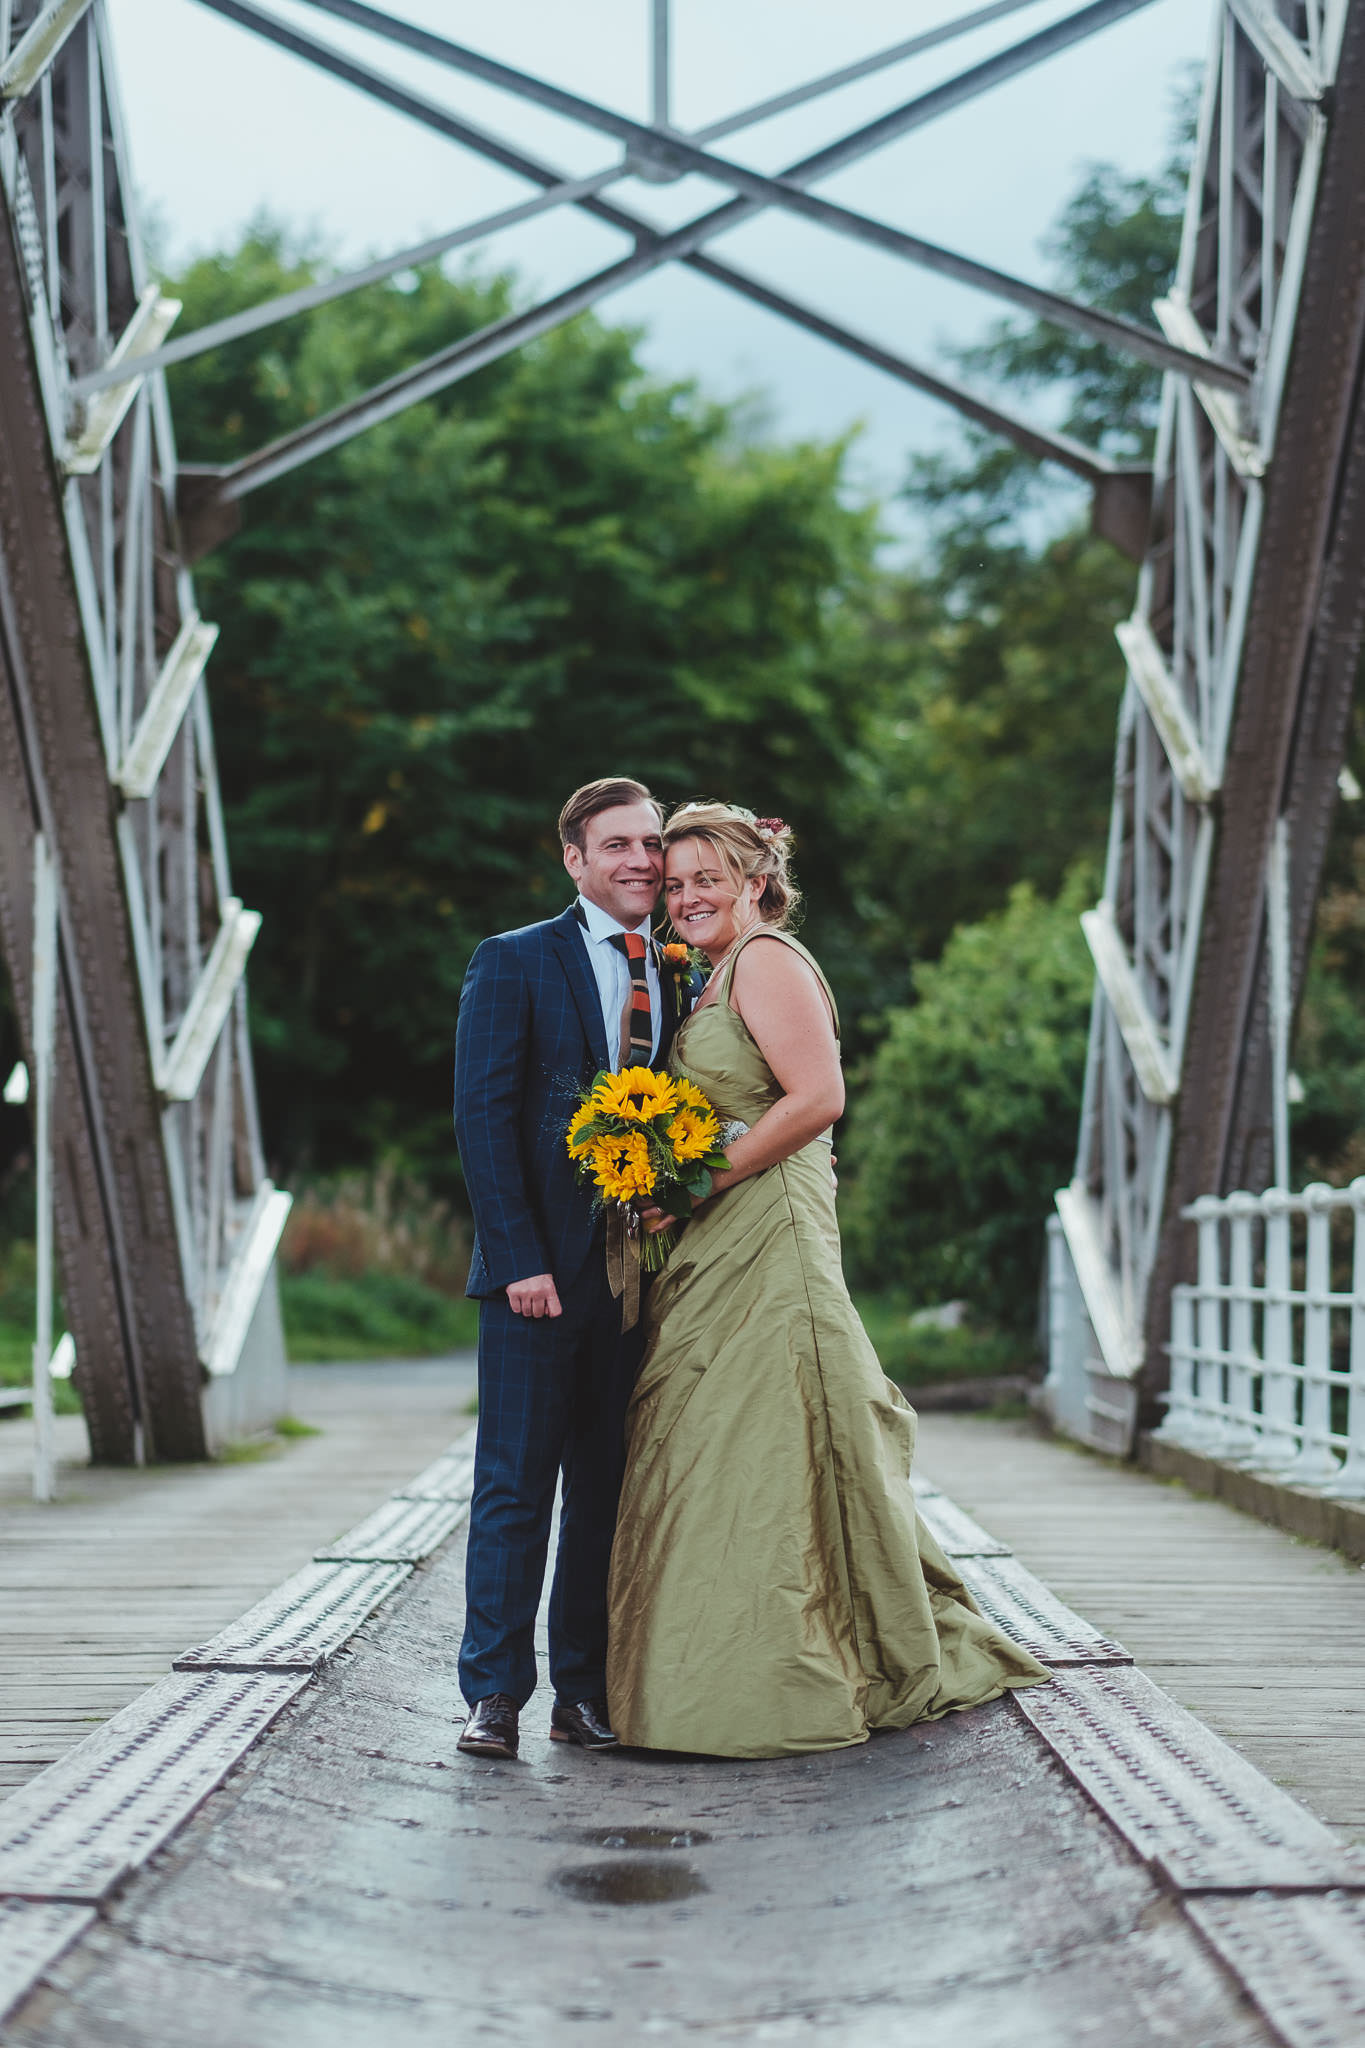 Bride and groom hug on the bridge at Hagg Bank